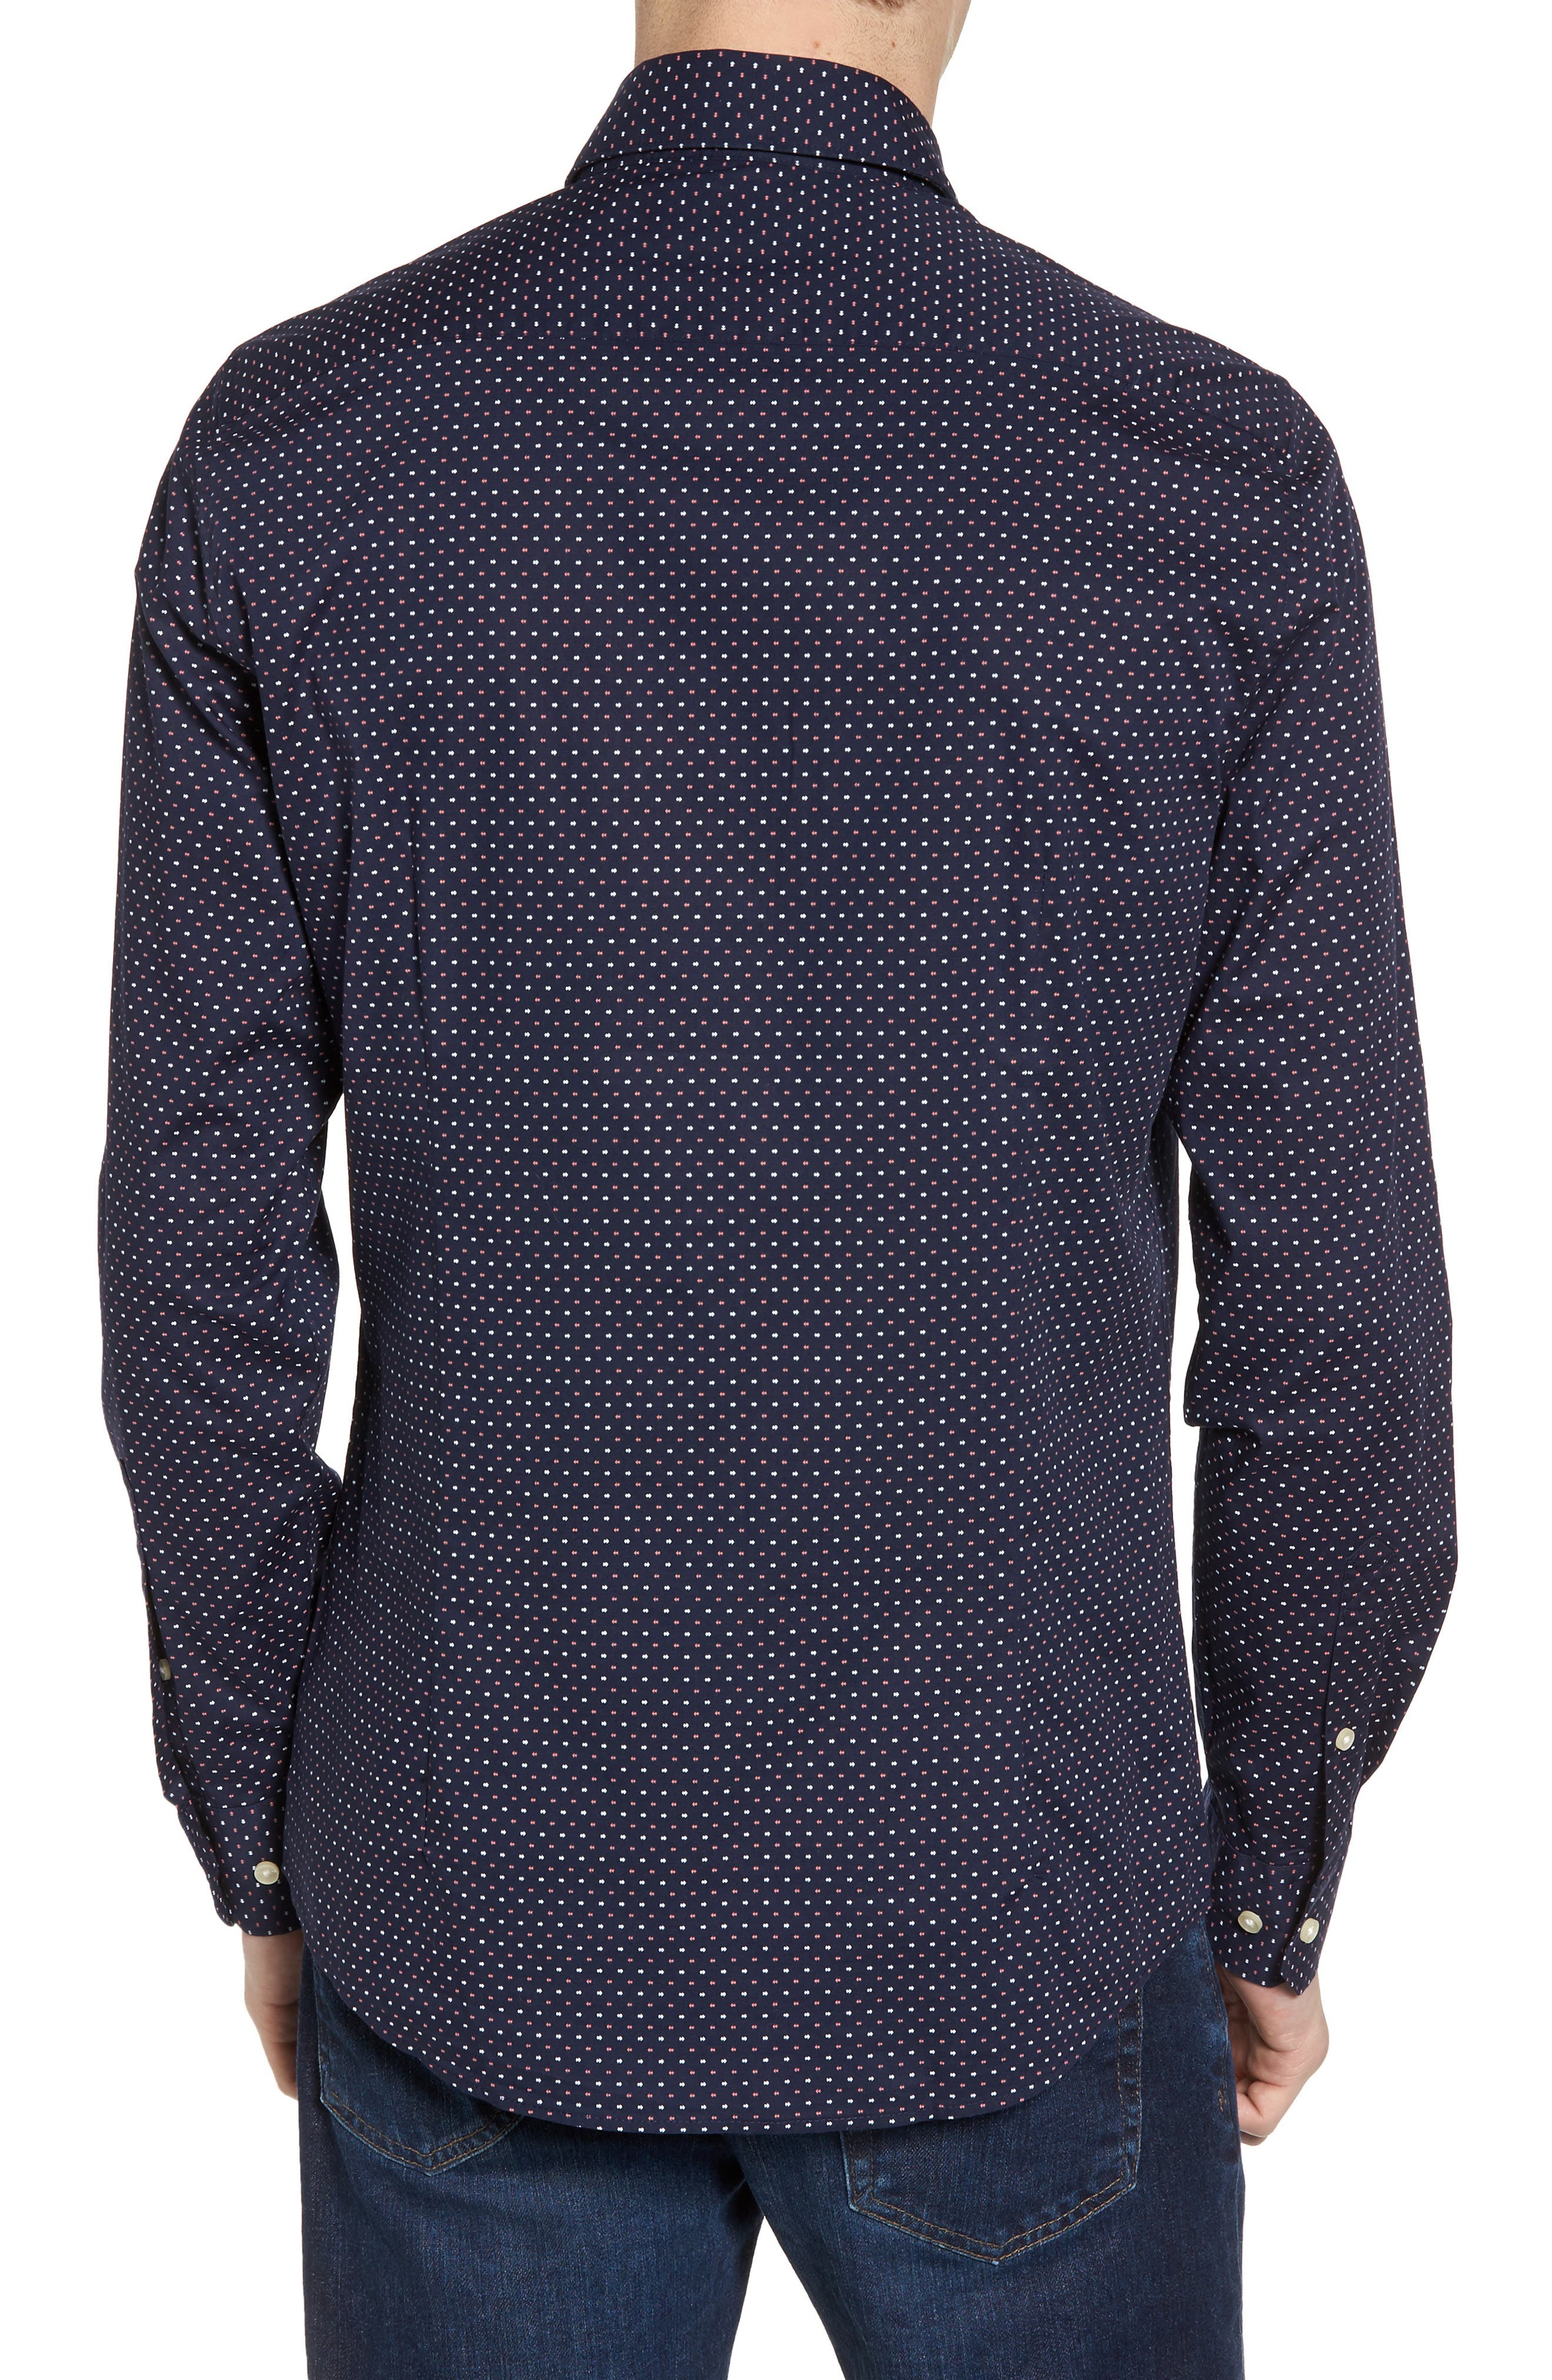 Cullen Trim Fit Print Sport Shirt,                             Alternate thumbnail 2, color,                             Navy